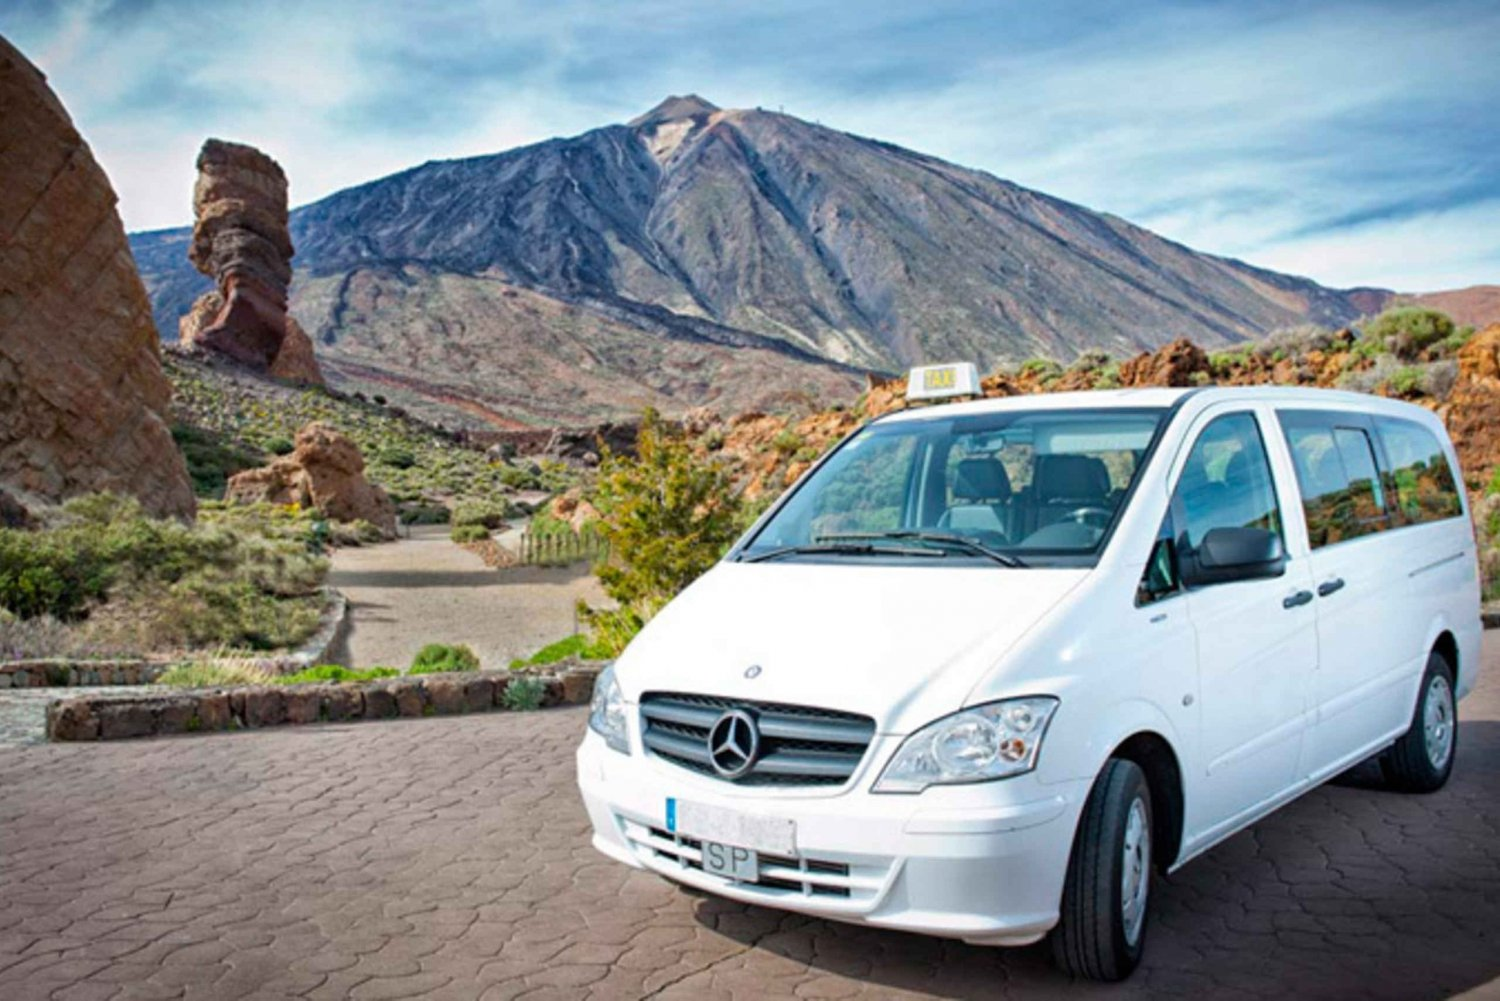 Tenerife North Airport Transfer (to any location)